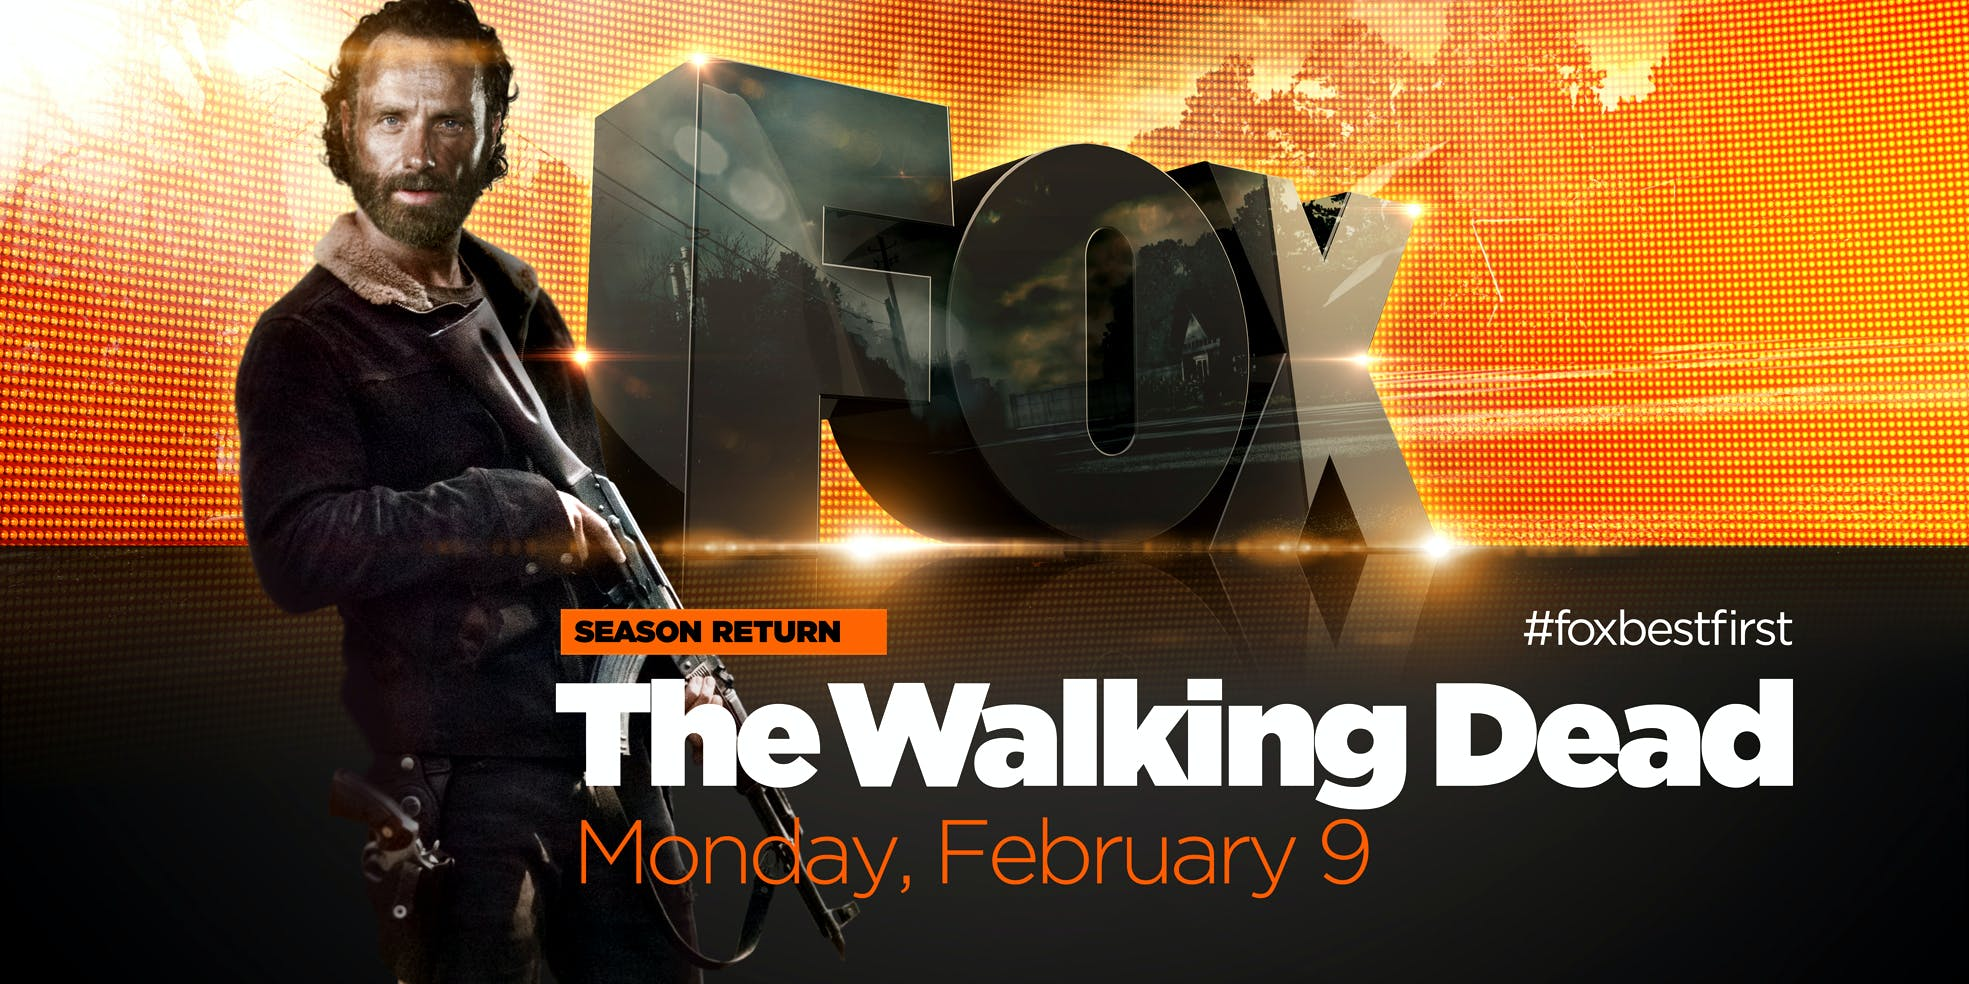 Fox's global rebrand aims to position the network as the home of 'event television'